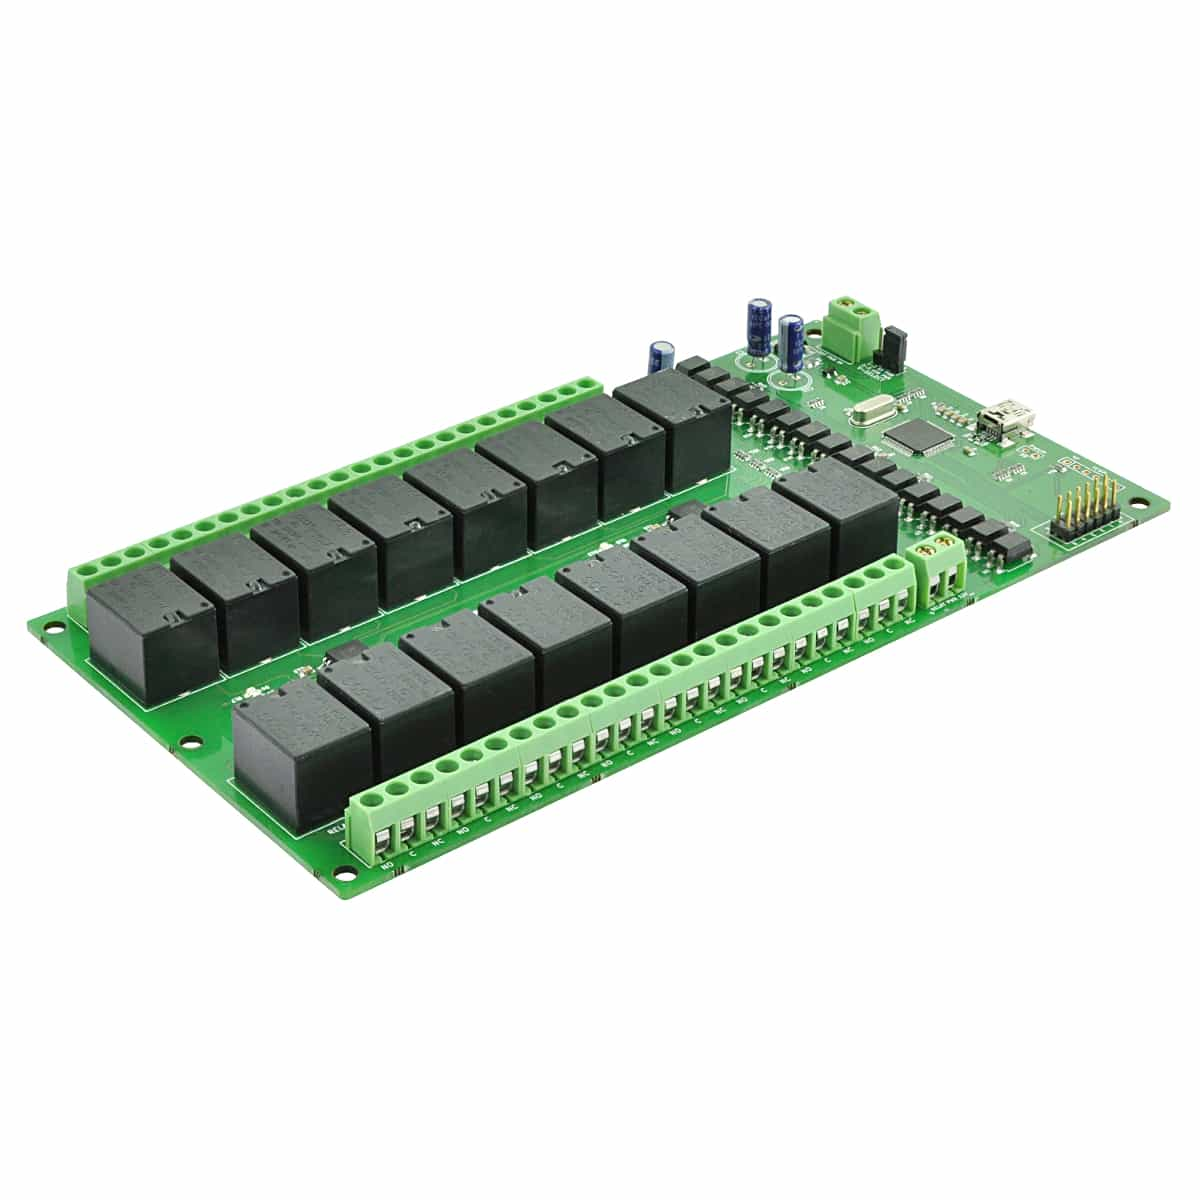 16 Channel USB Relay Module With GPIO And Inputs | Numato Lab